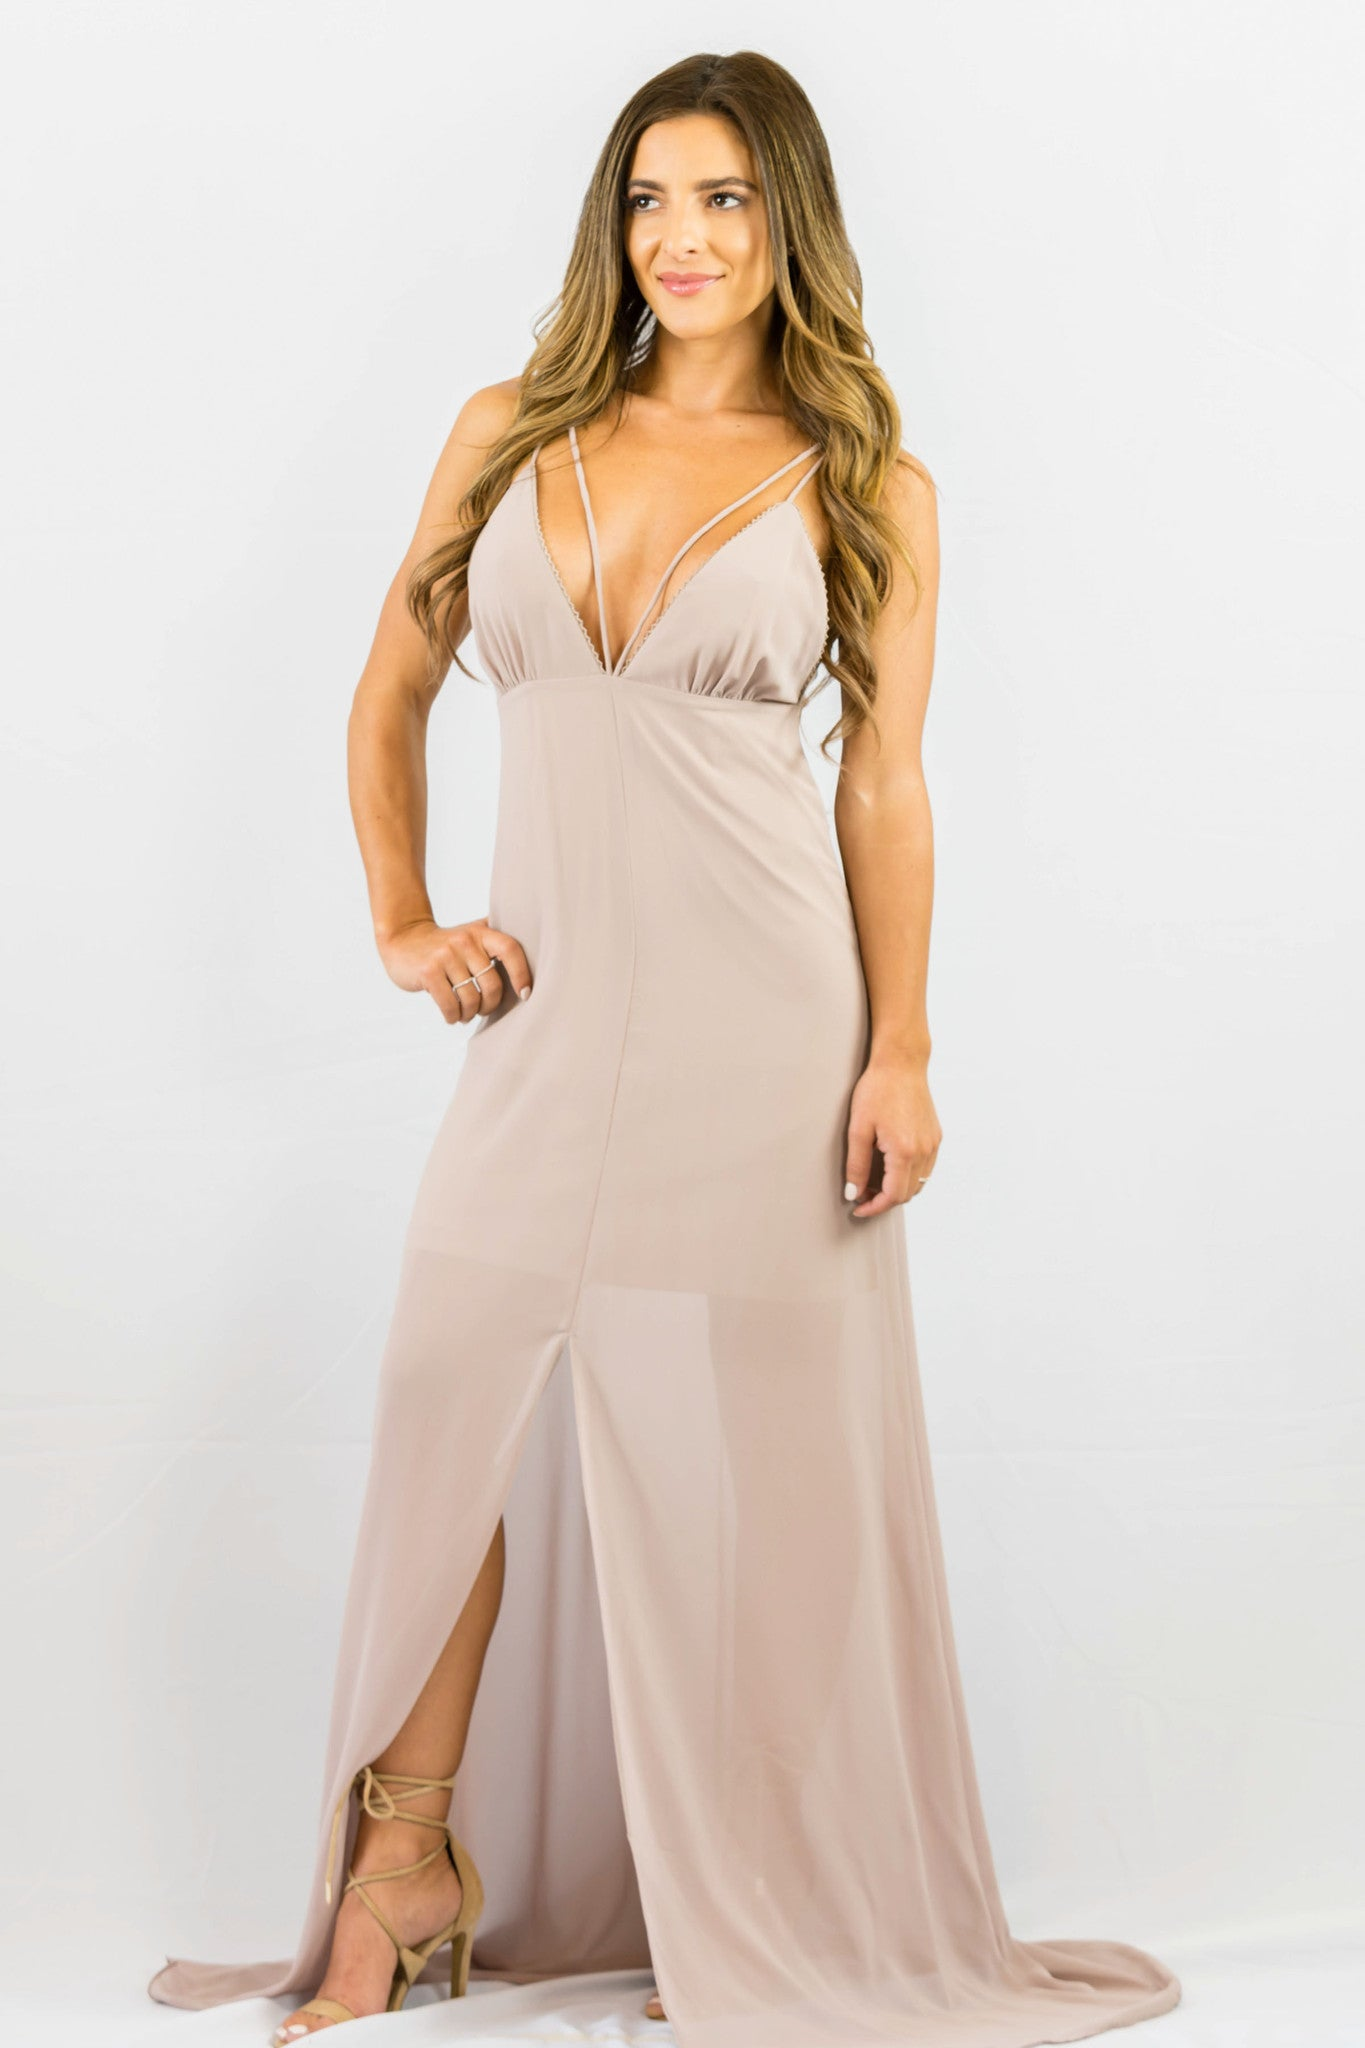 WYLDR Stay With Me Plunge Maxi Dress - DRESSES - WYLDR - Free Vibrationz - 5